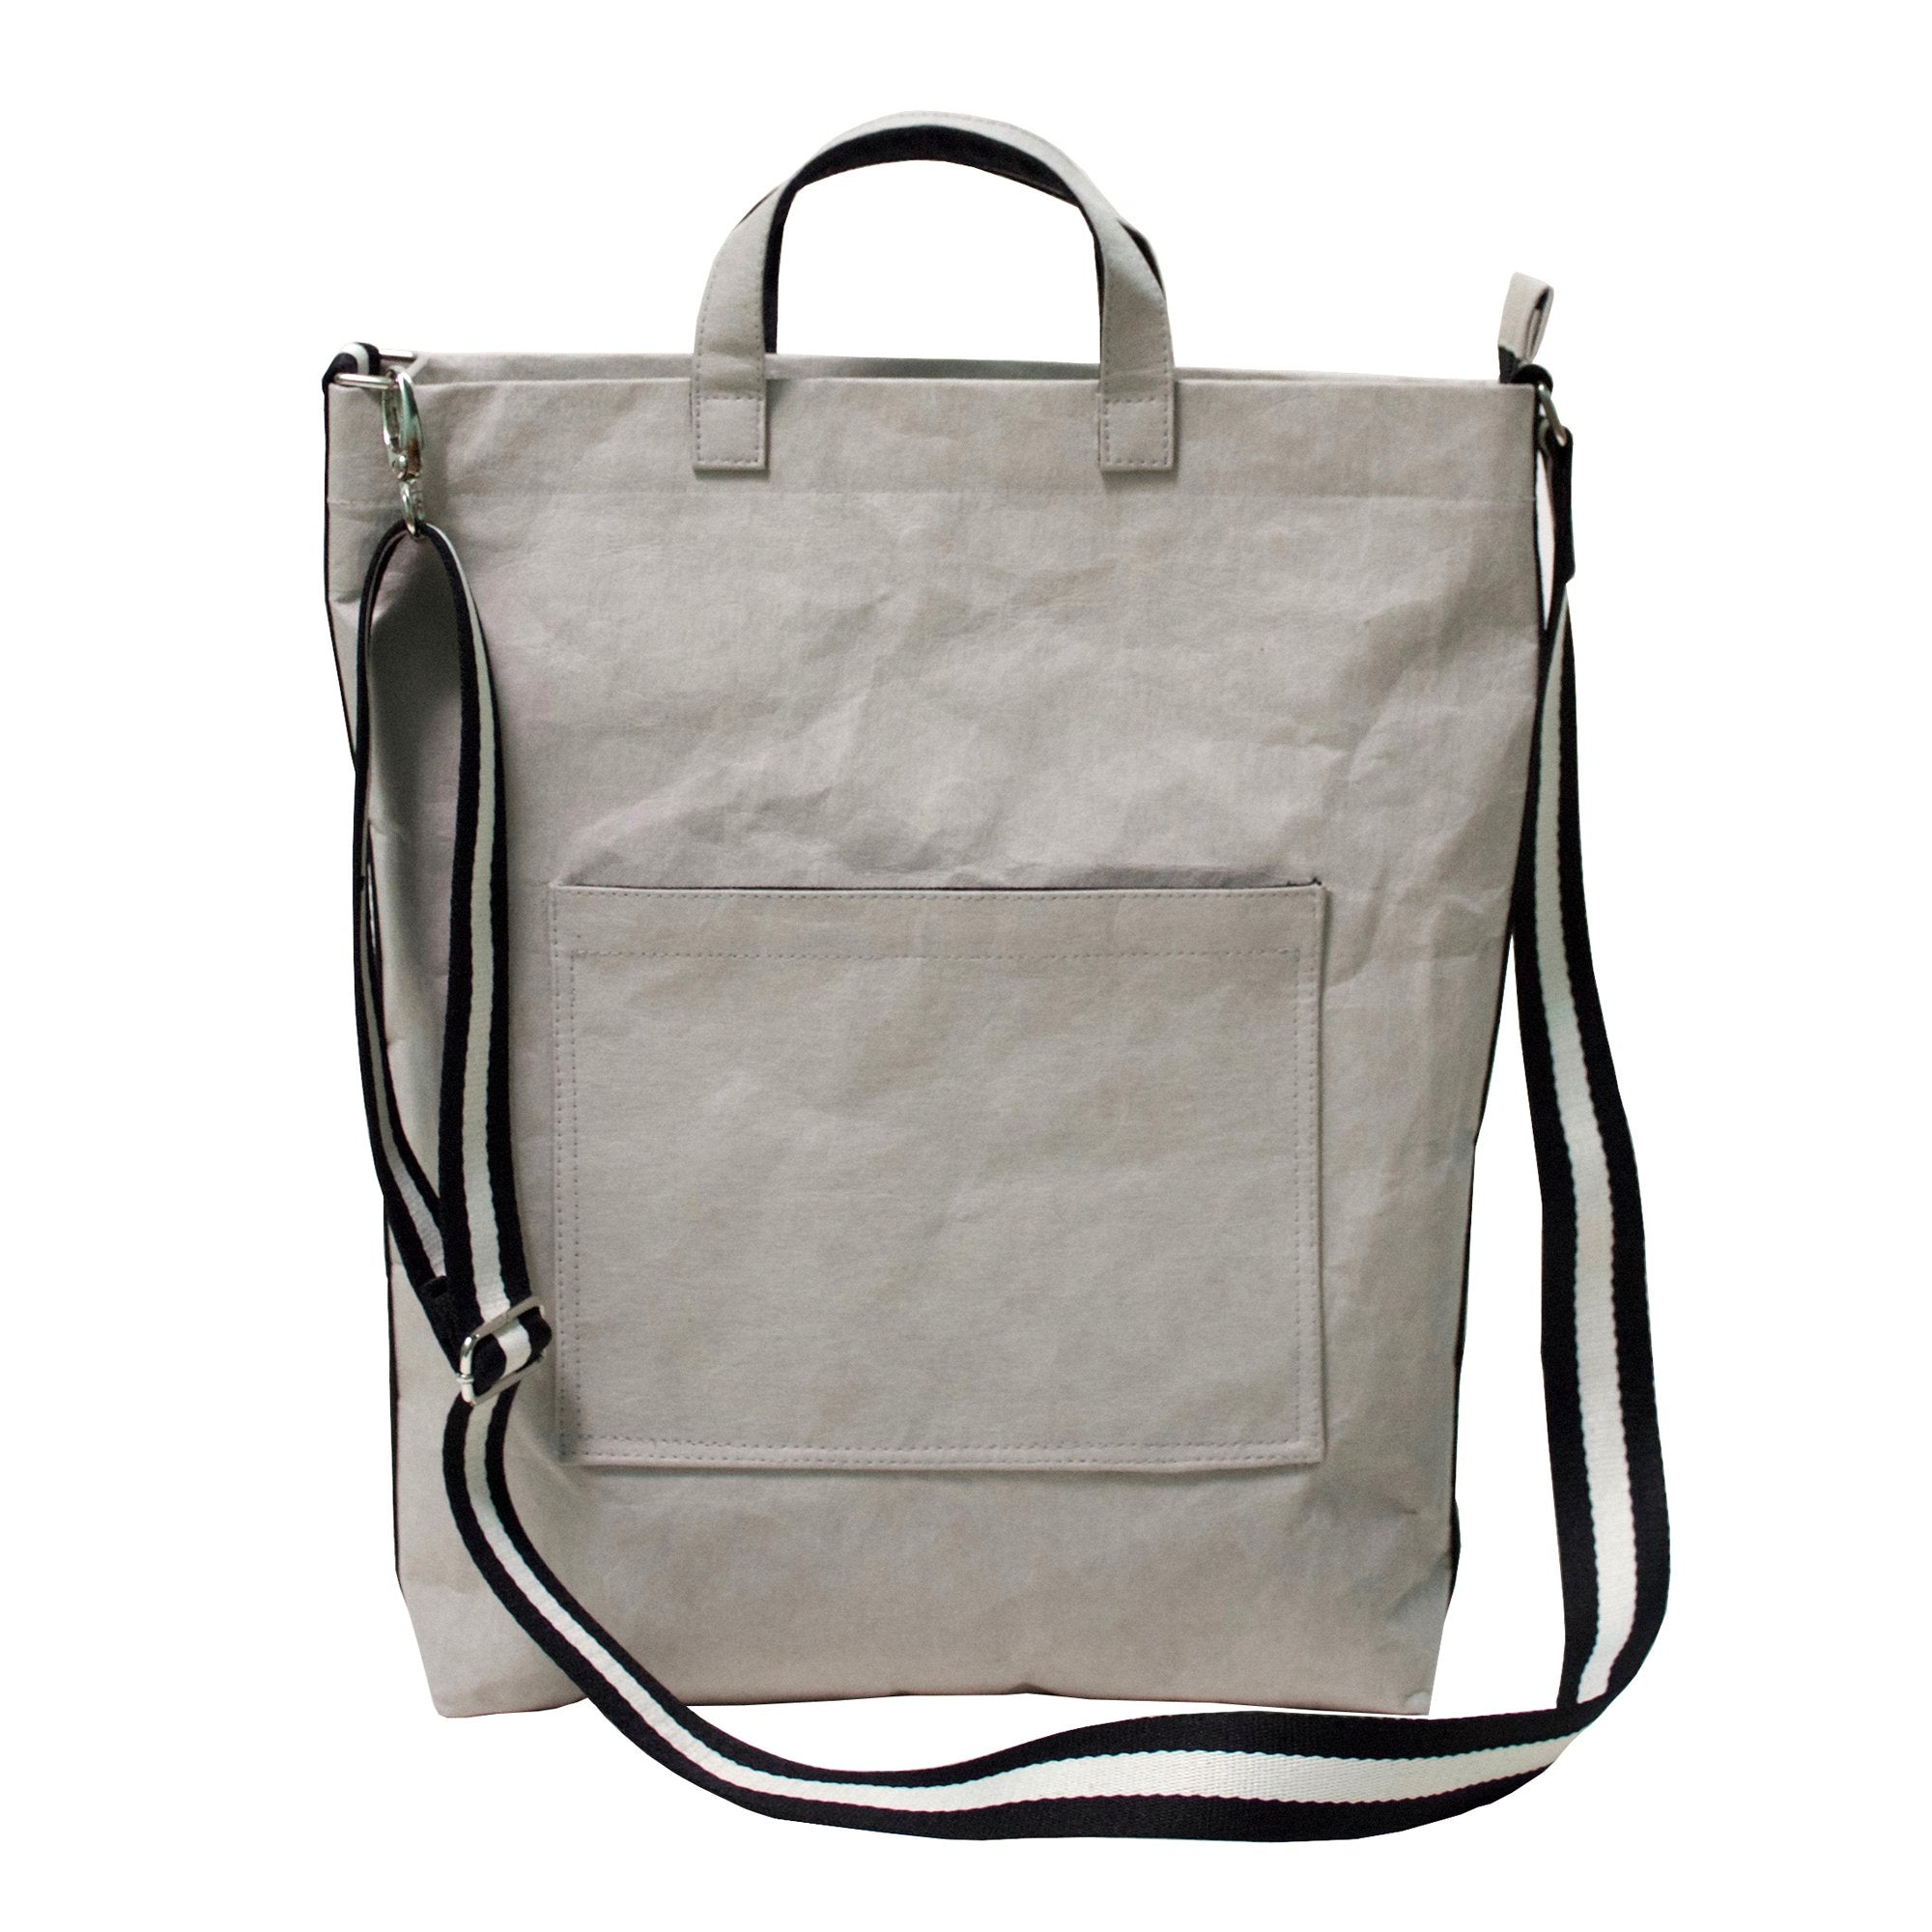 Demeter Grey Shoulder or Cross Body Bag made from Washable Paper